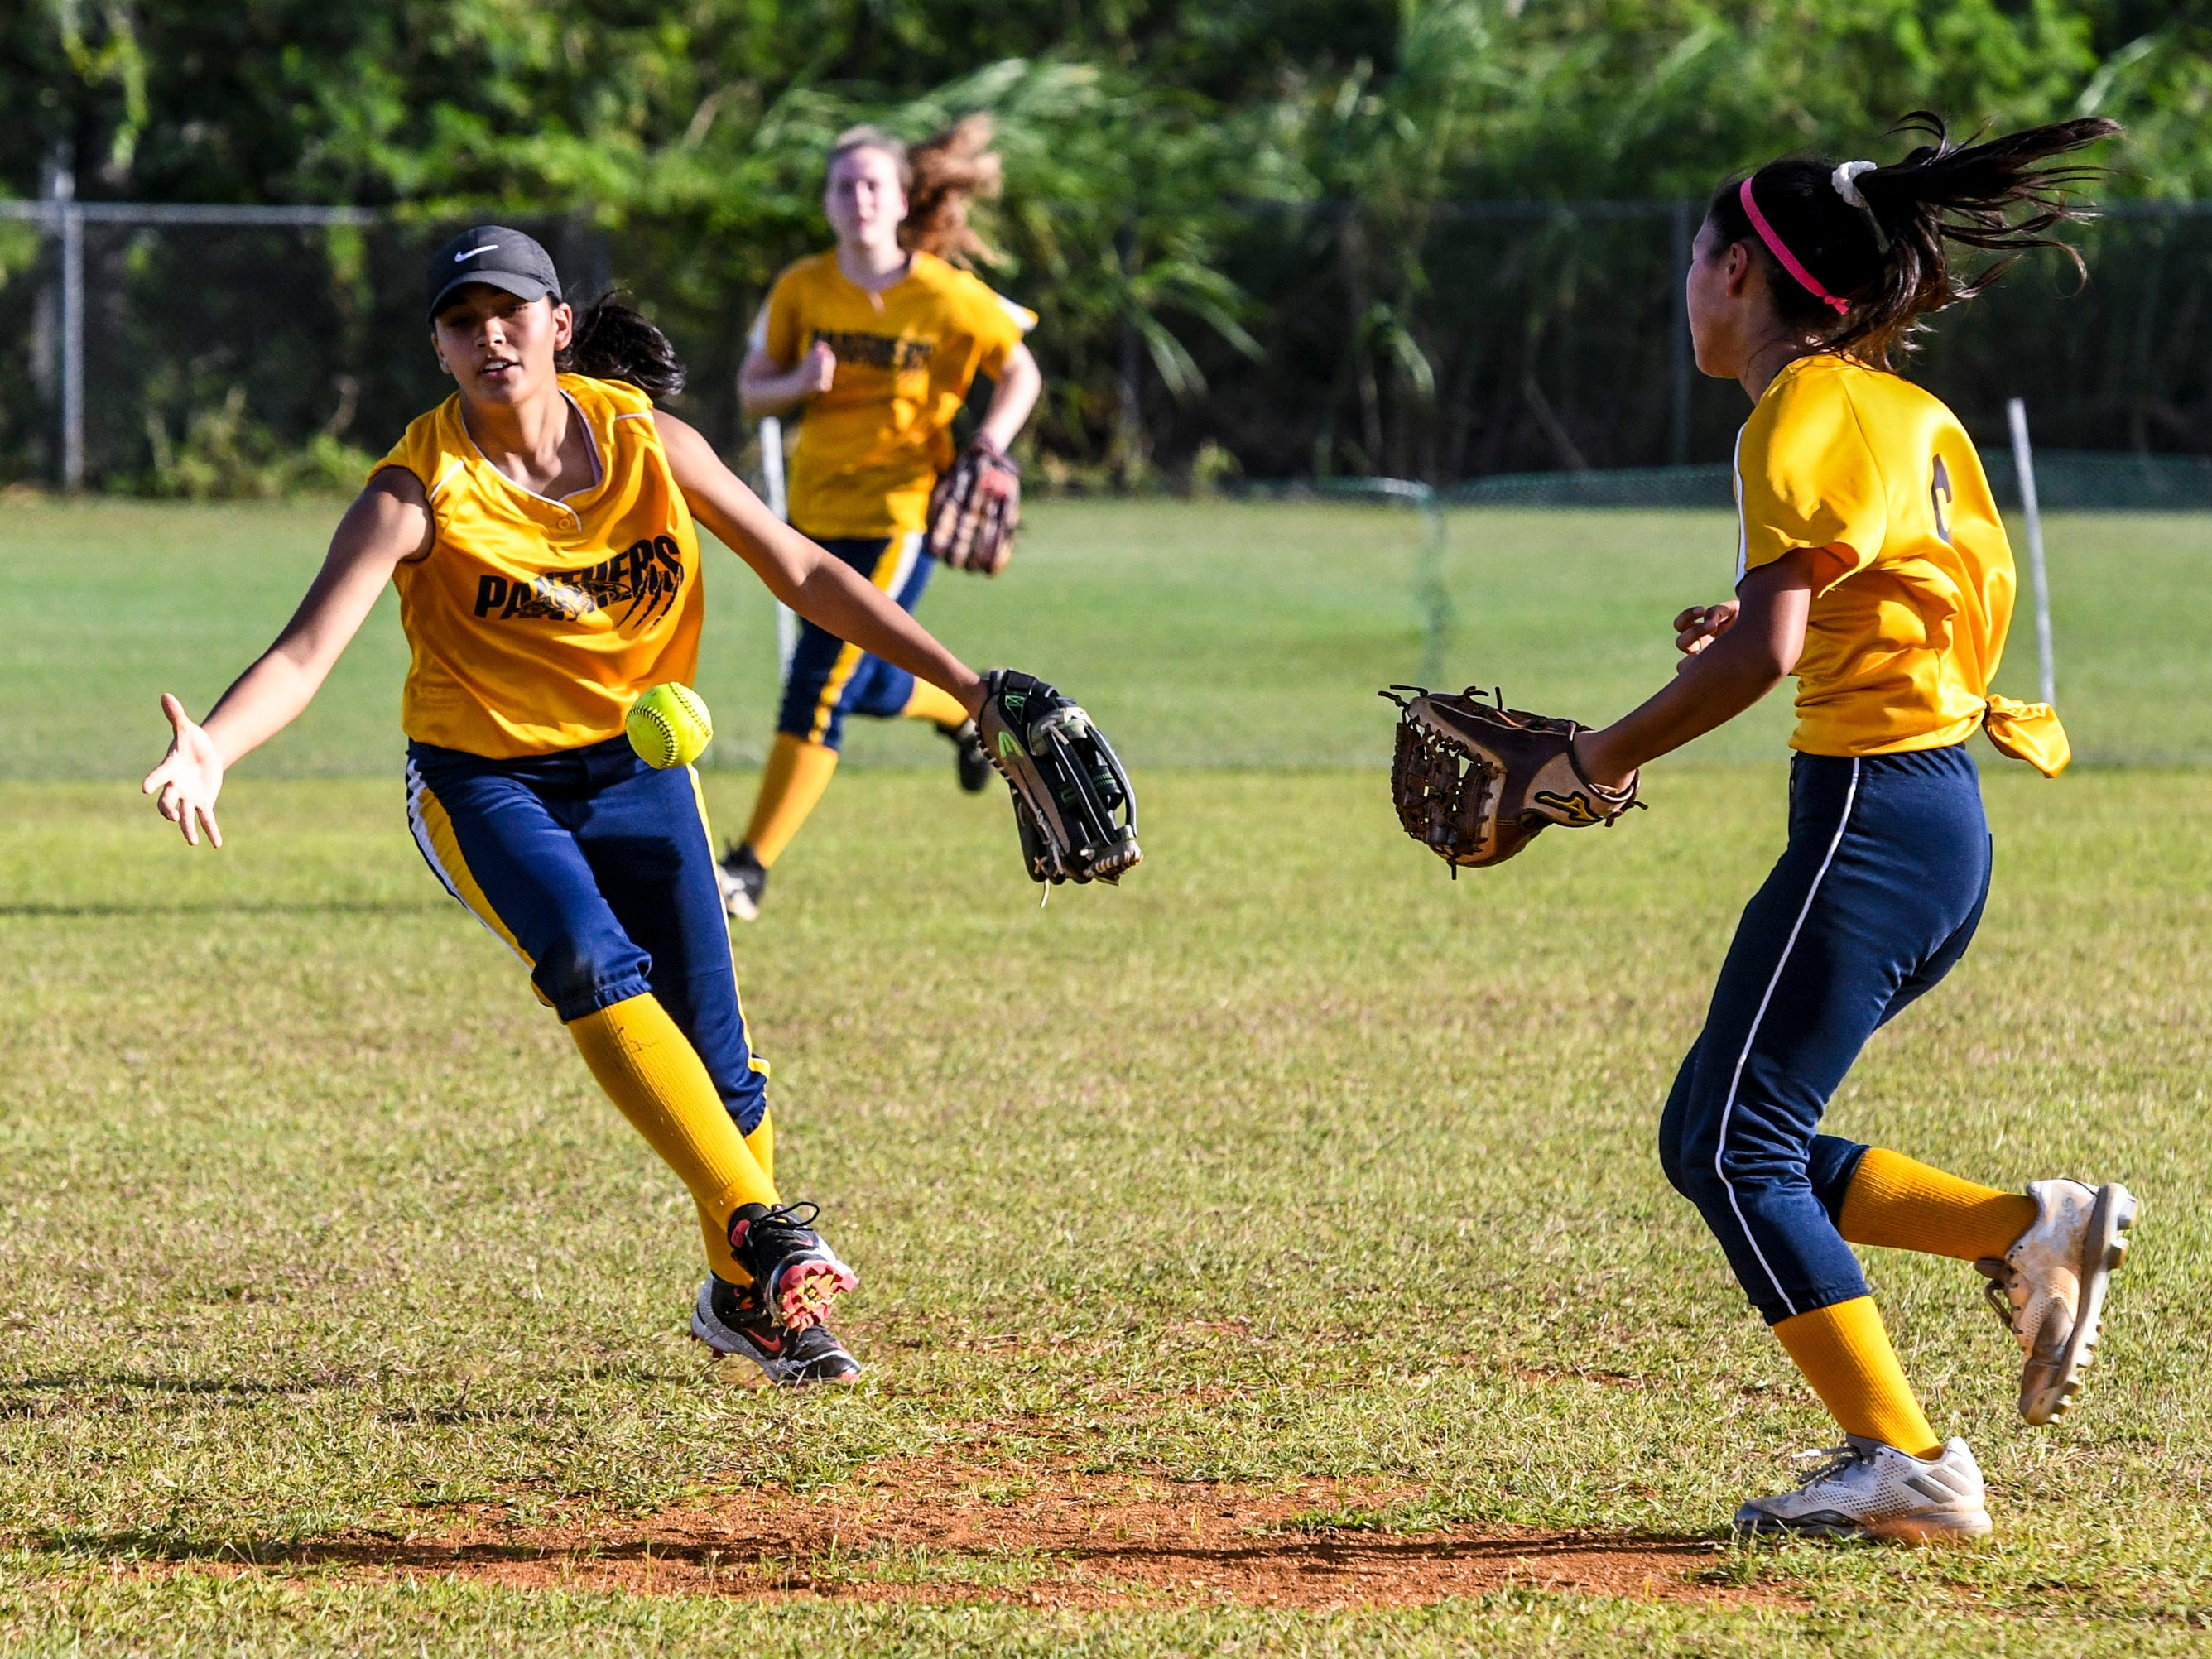 Guam High Panthers infielders scramble for the ball during their matchup with the John F. Kennedy Islanders at the JFK High School campus in Tamuning on Thursday, Feb. 7, 2019.